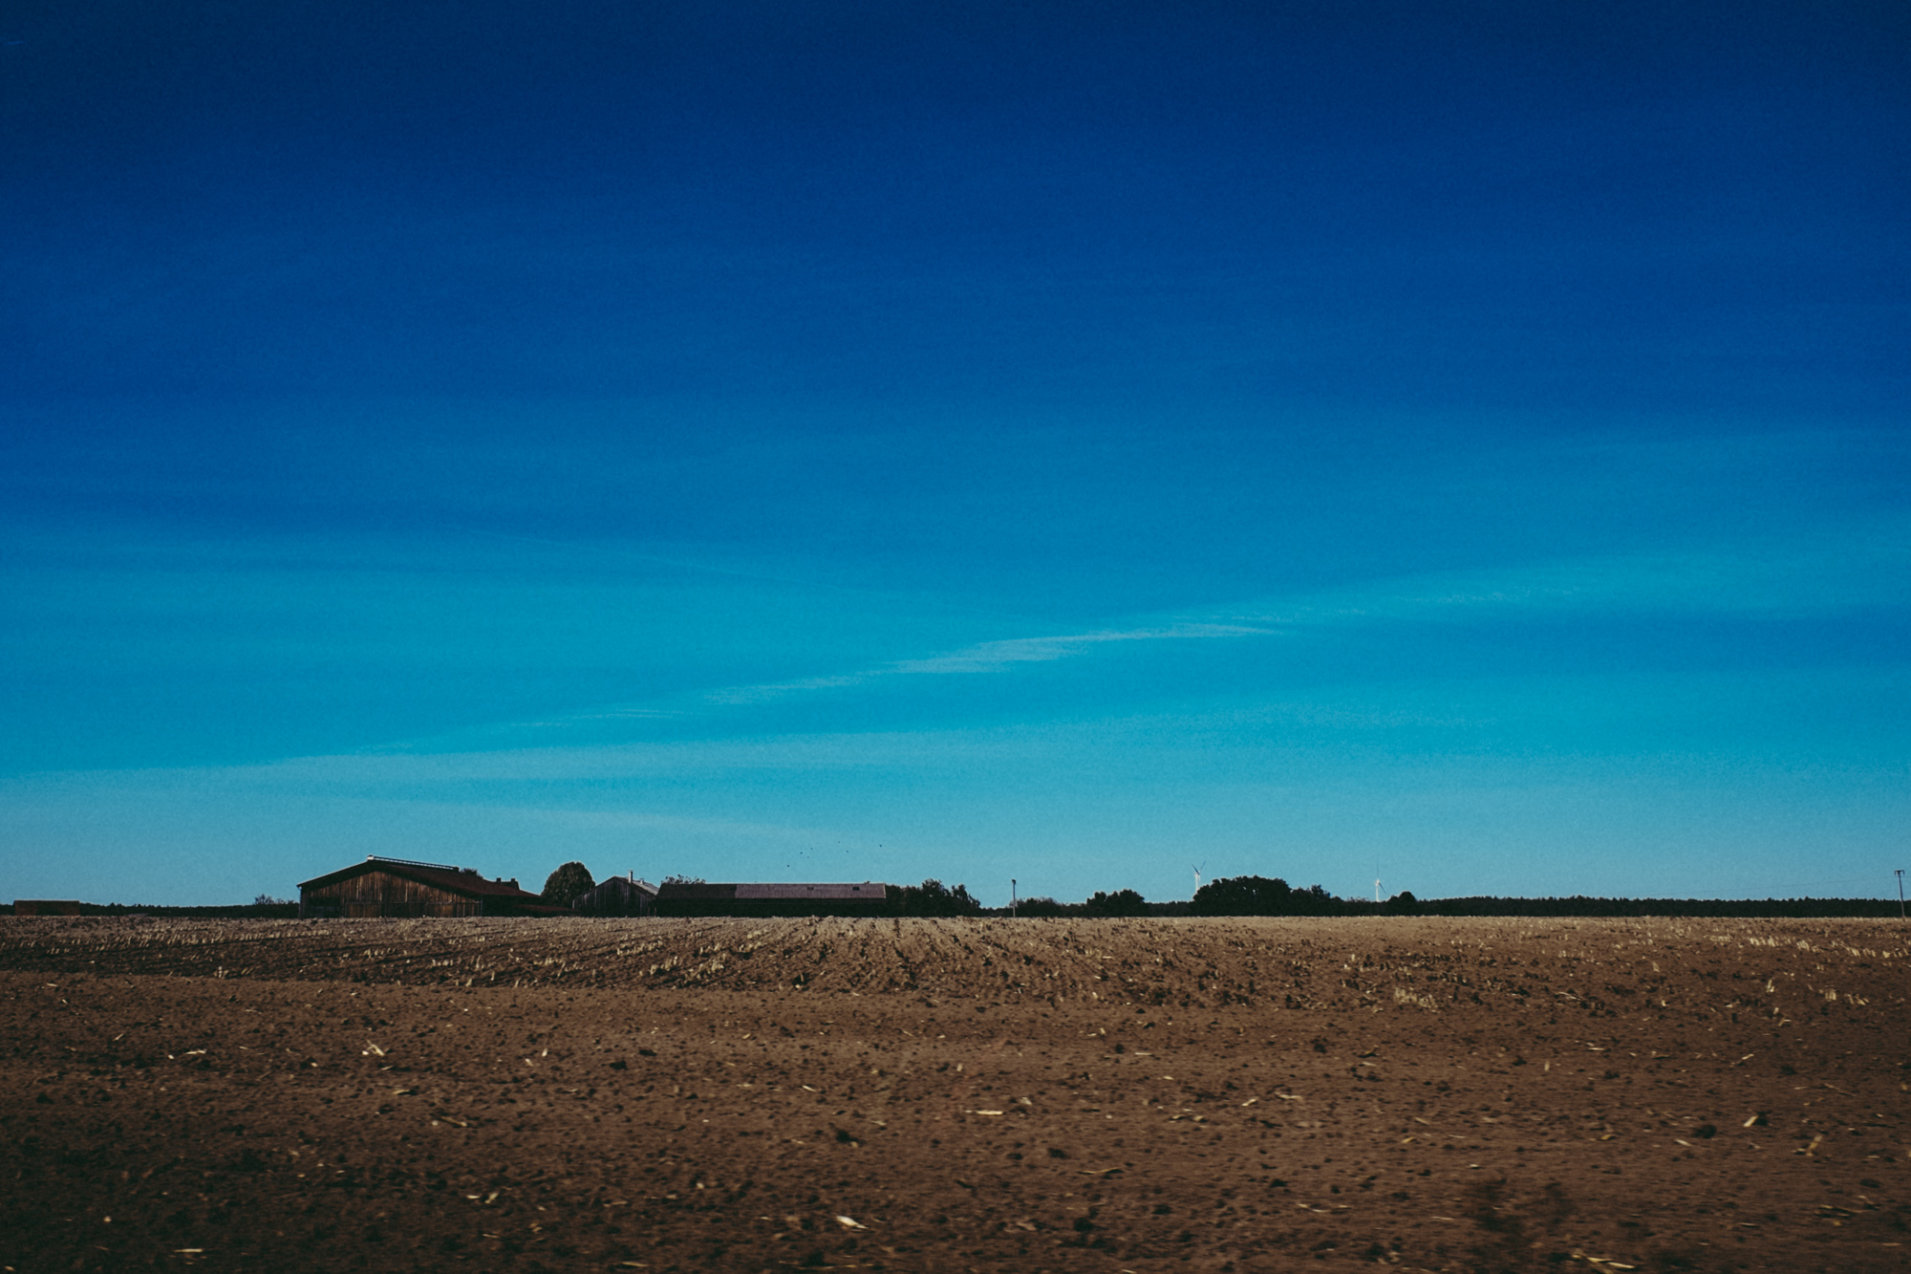 © Holger Kral • Photography - Vorbei - Fujifilm X70, Germany, Landscape, Summer - photo #13